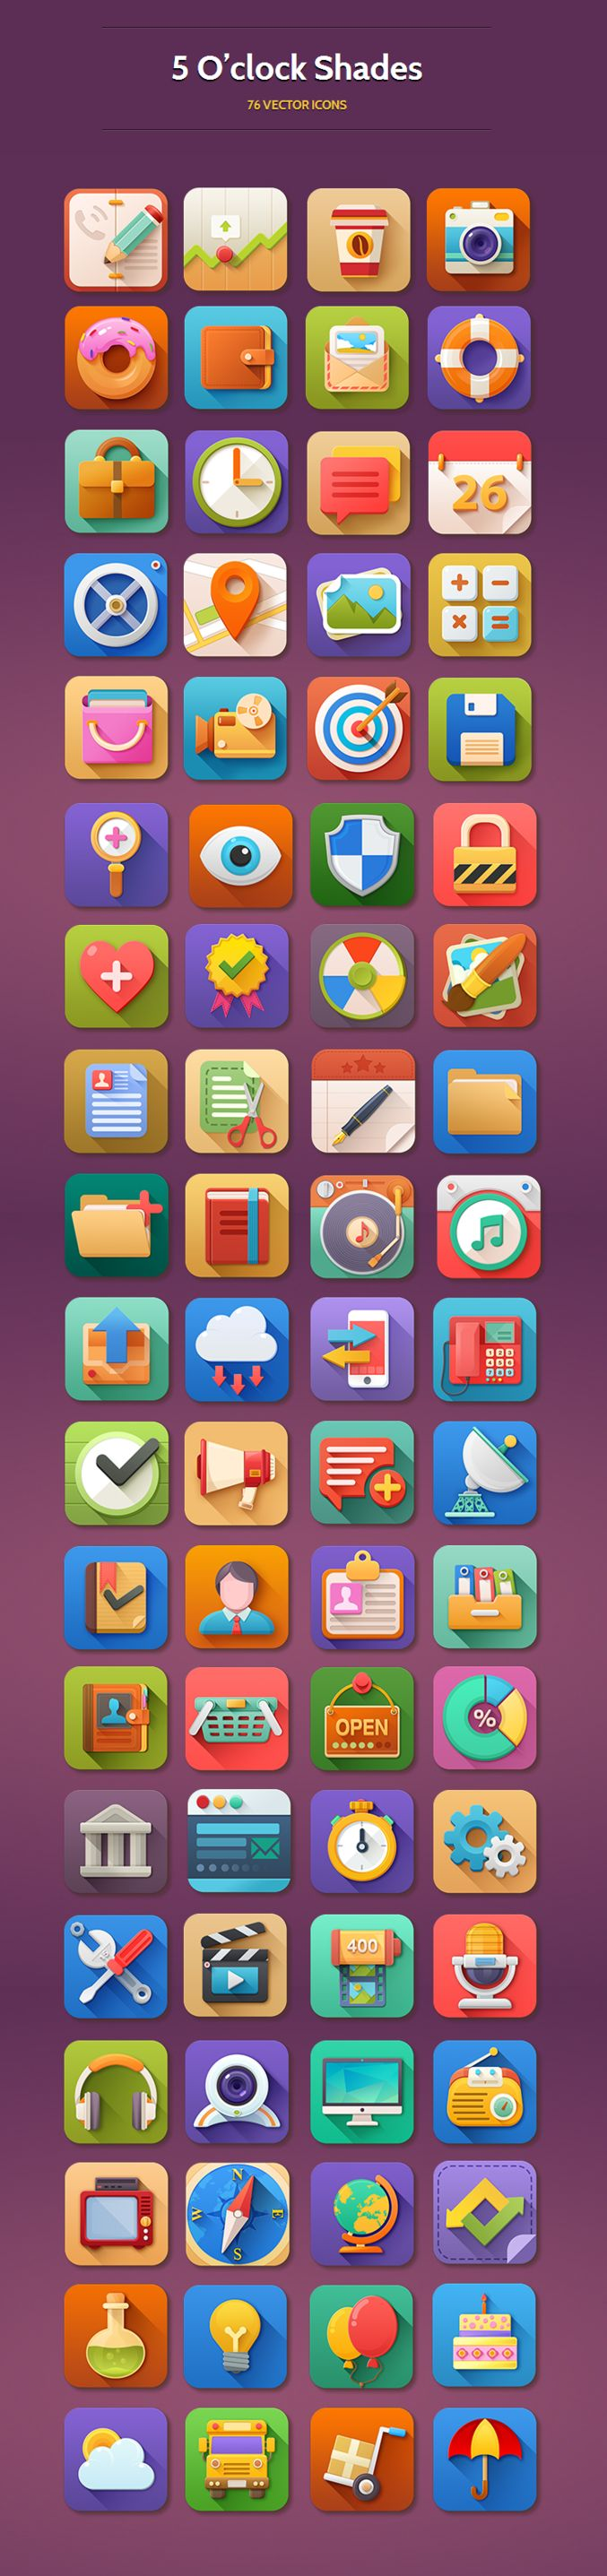 5 o'clock - 76 icons by pixelkit #icon #design #free #download #freebie